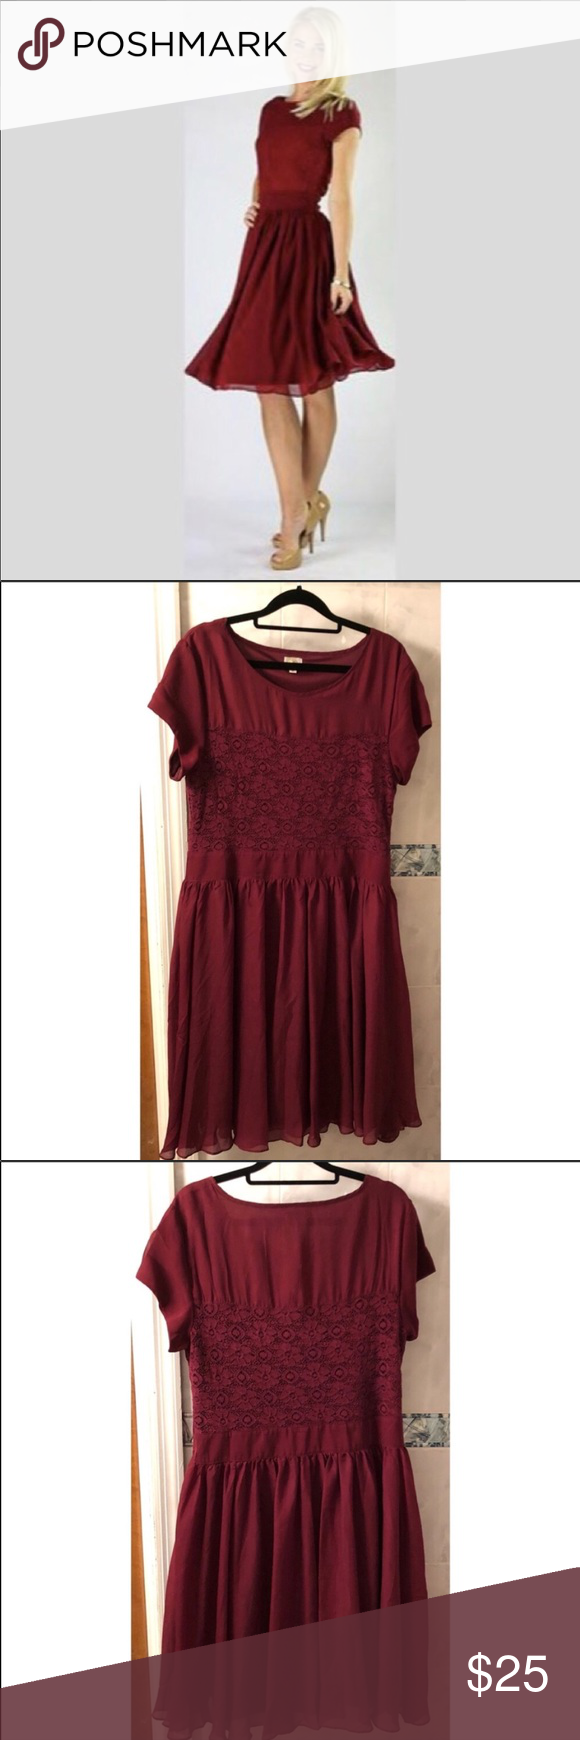 Wedding attendee dresses  Red formal dress perfect for wedding attendee in   My Posh